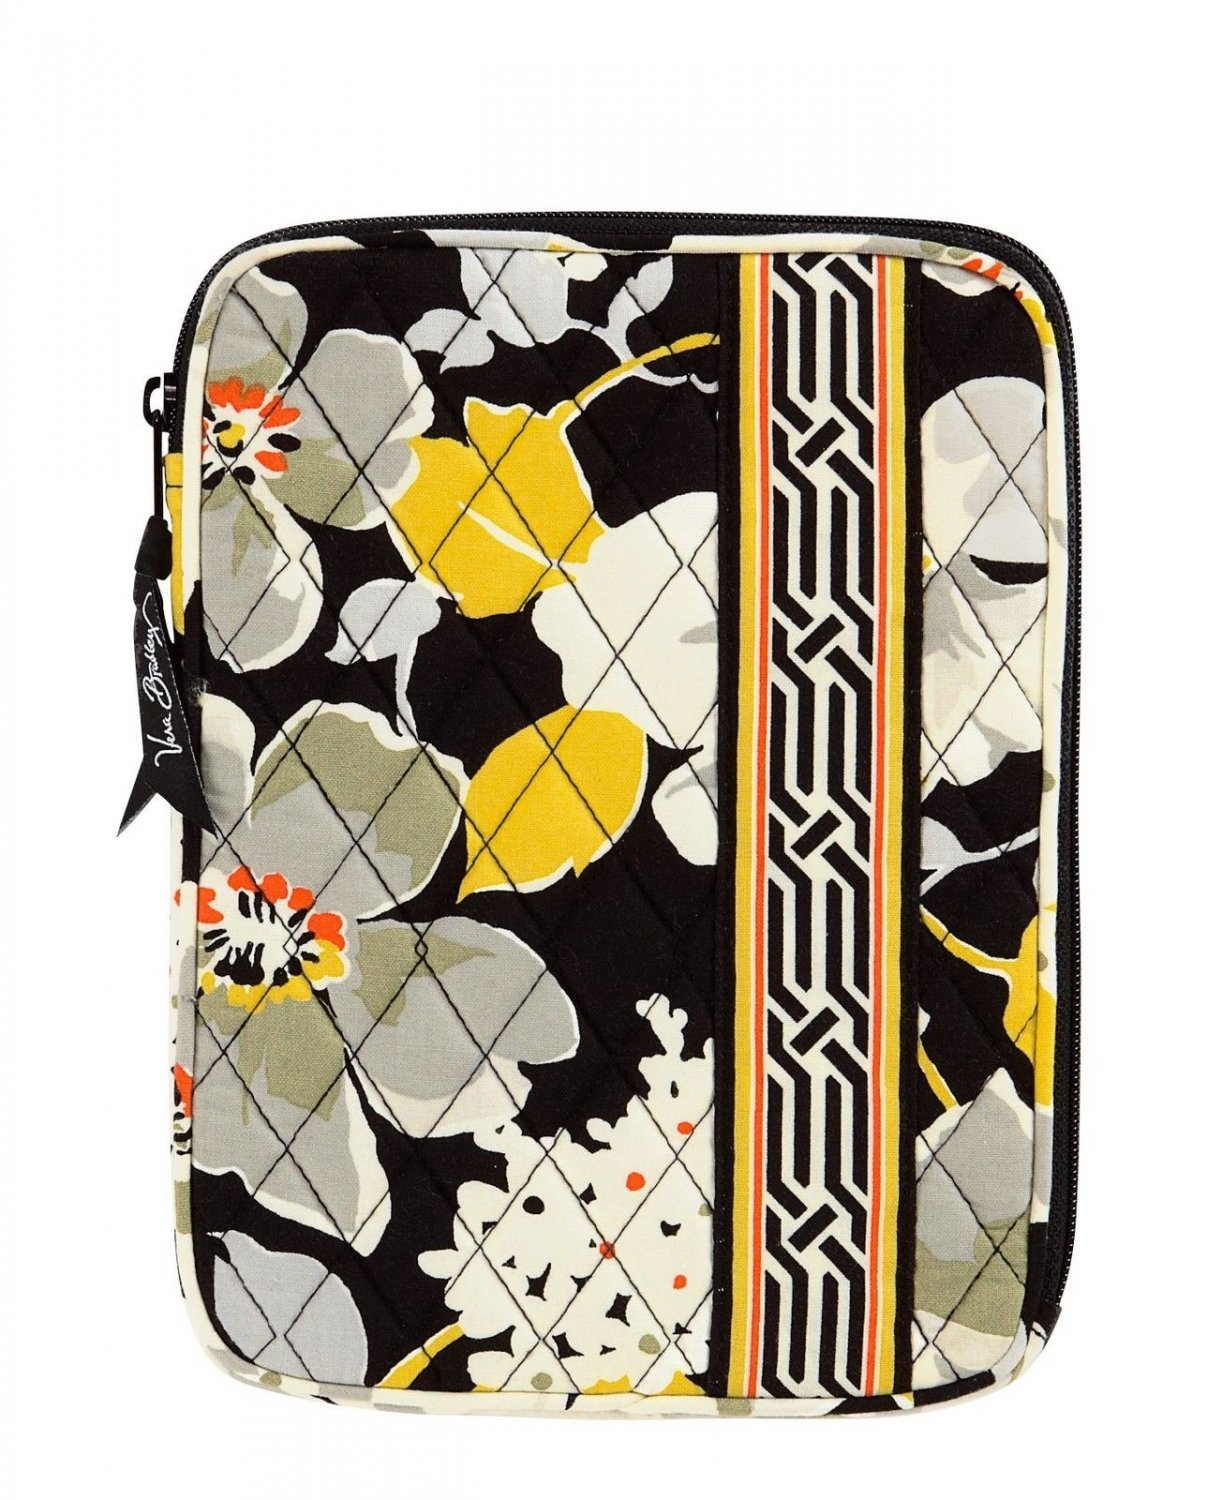 Vera Bradley Tablet Sleeve in Dogwood  Retired NWT � iPad case cover